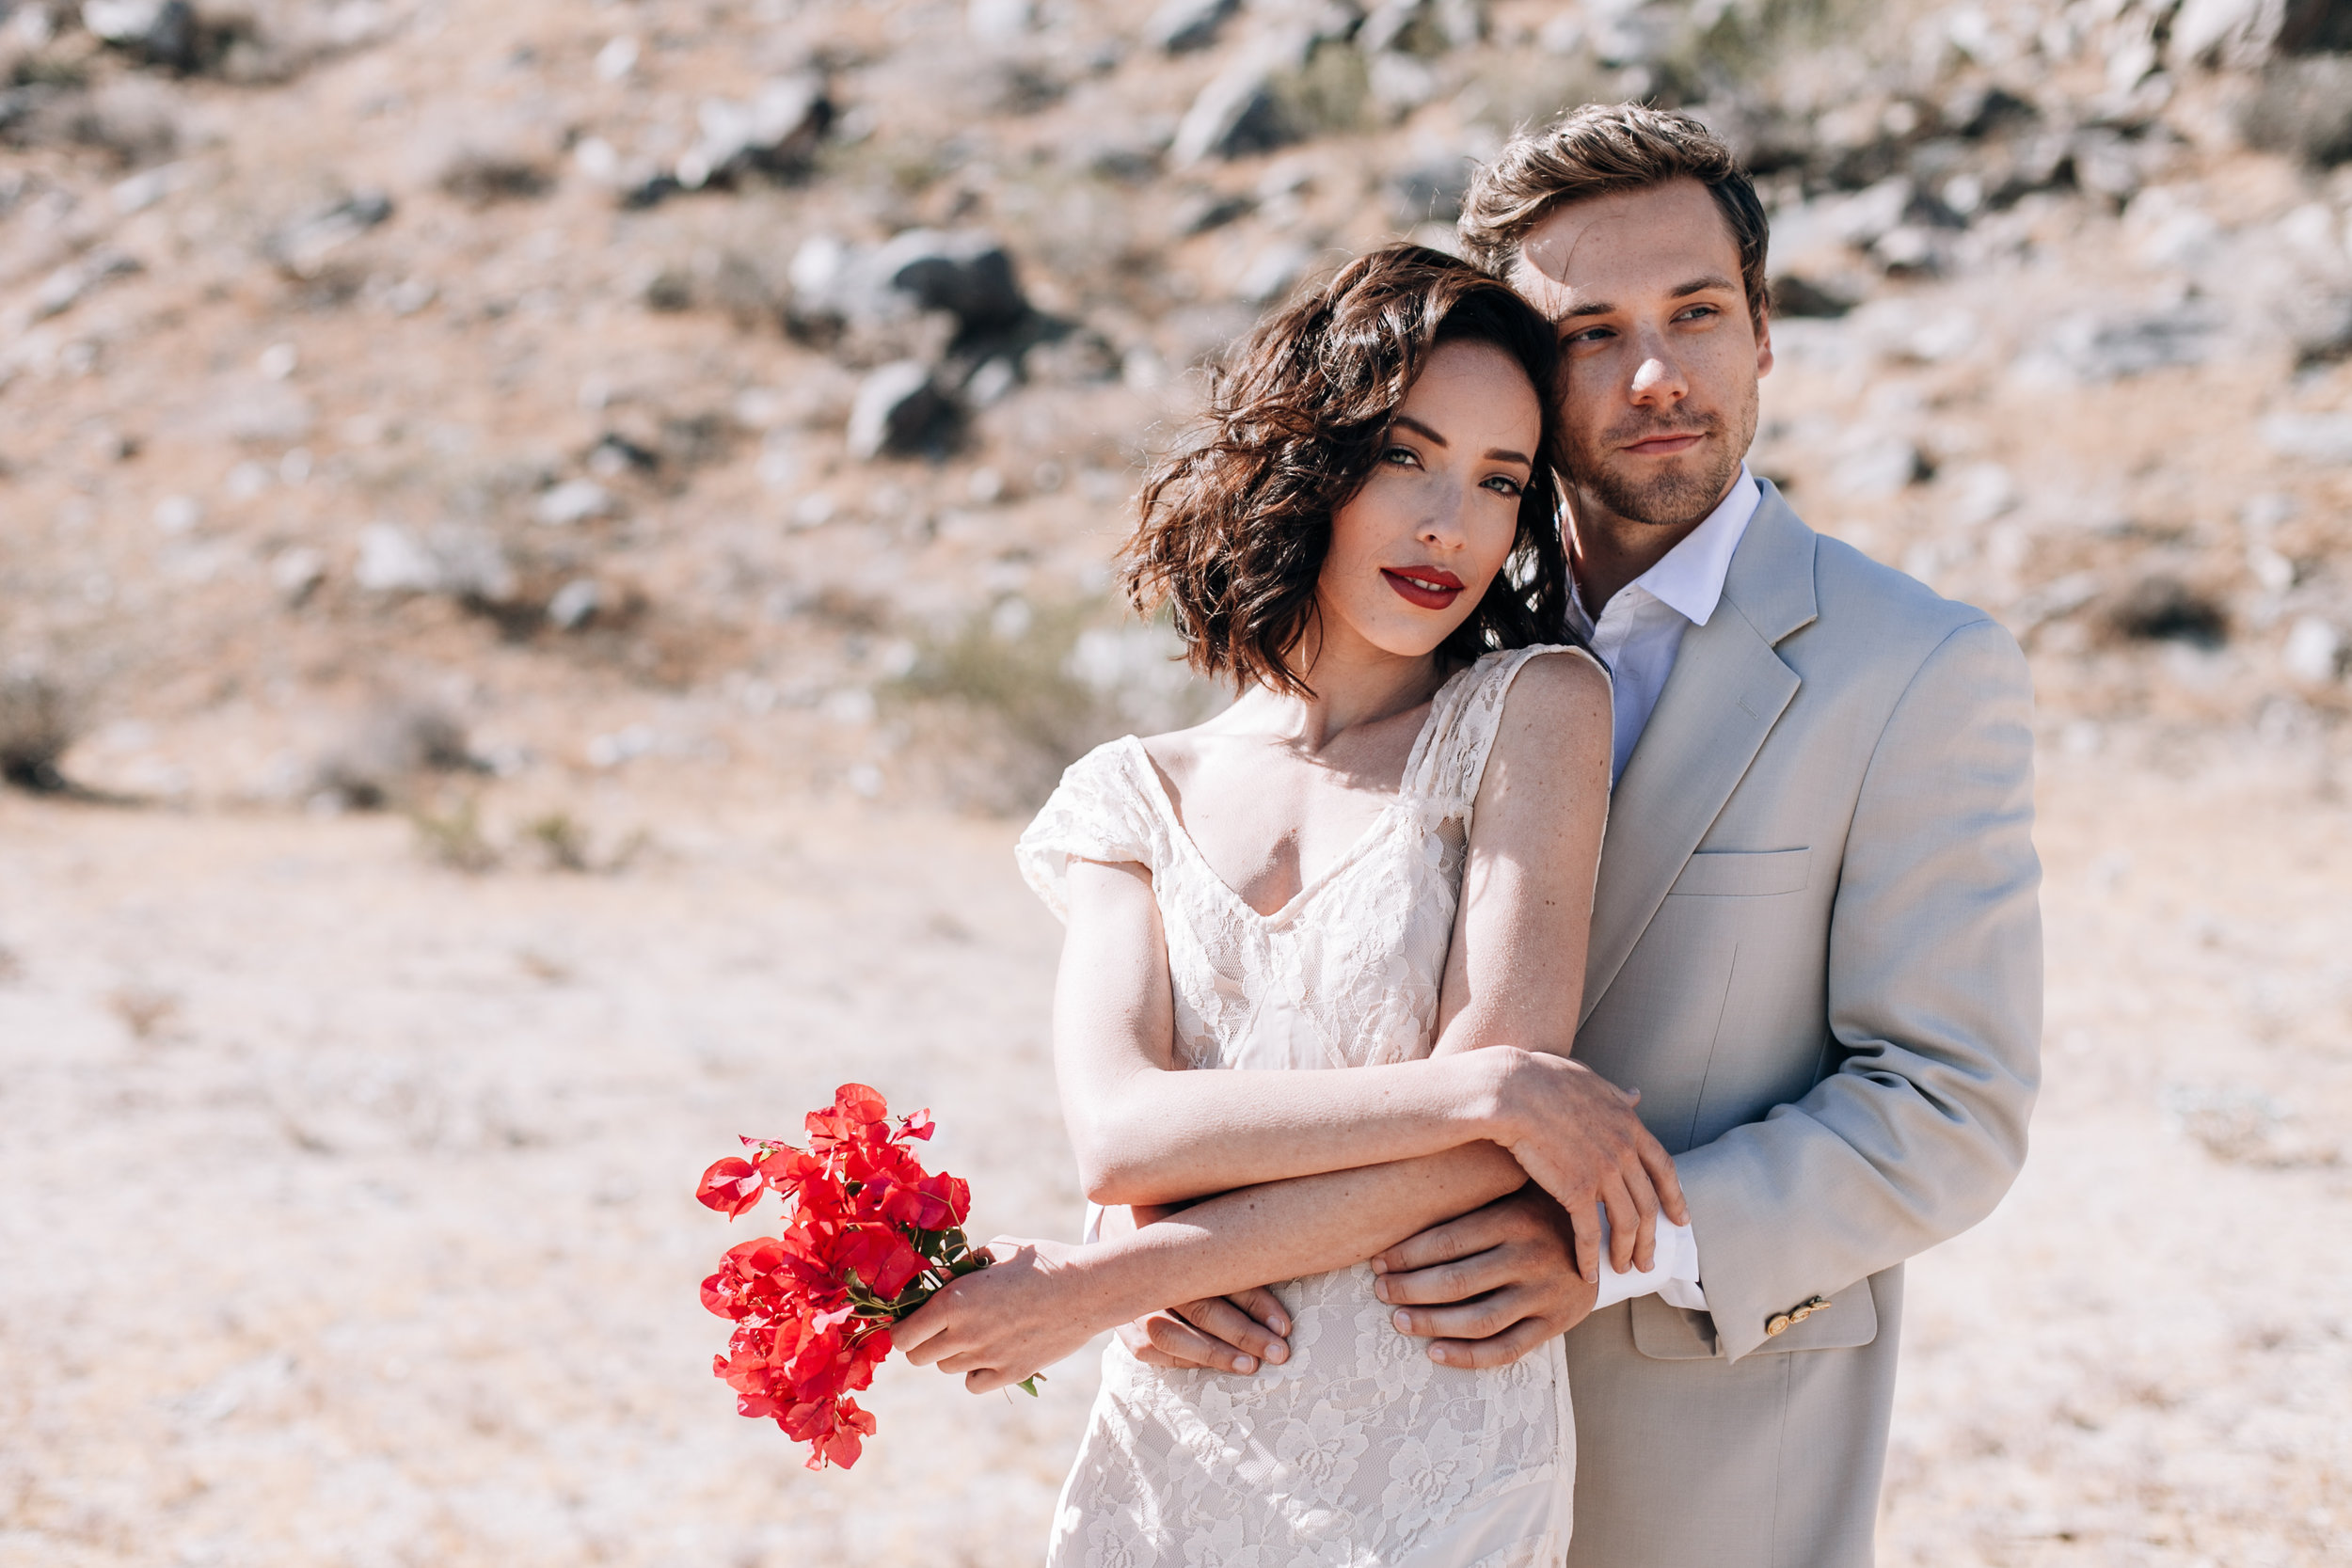 KaraNixonWeddings-PalmSprings-Elopement-4.jpg